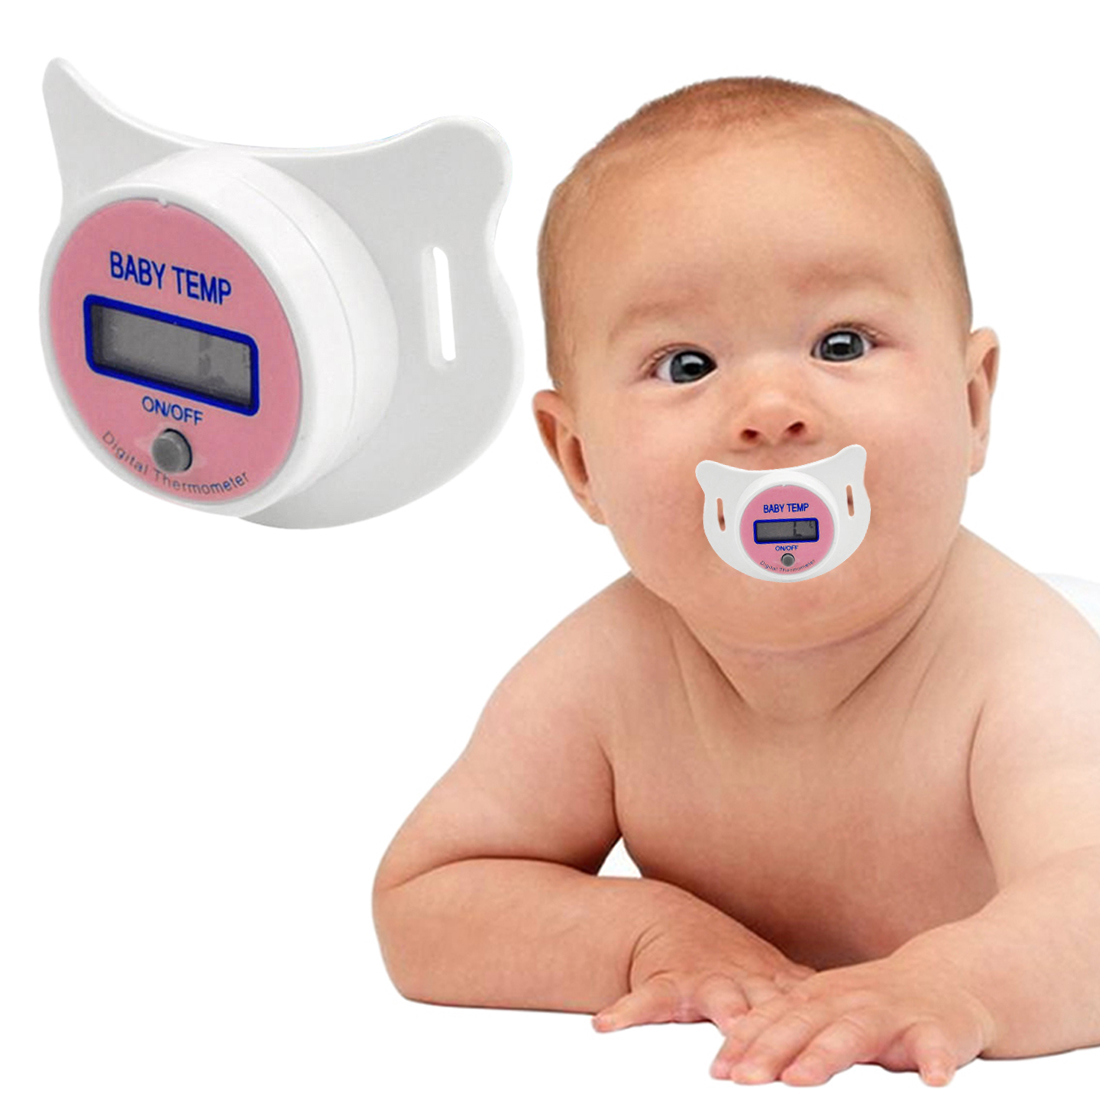 LCD Digital Baby Nipple Thermometer Medical Silicone Pacifier Children's Thermometer Health Safety Care Thermometer For Children